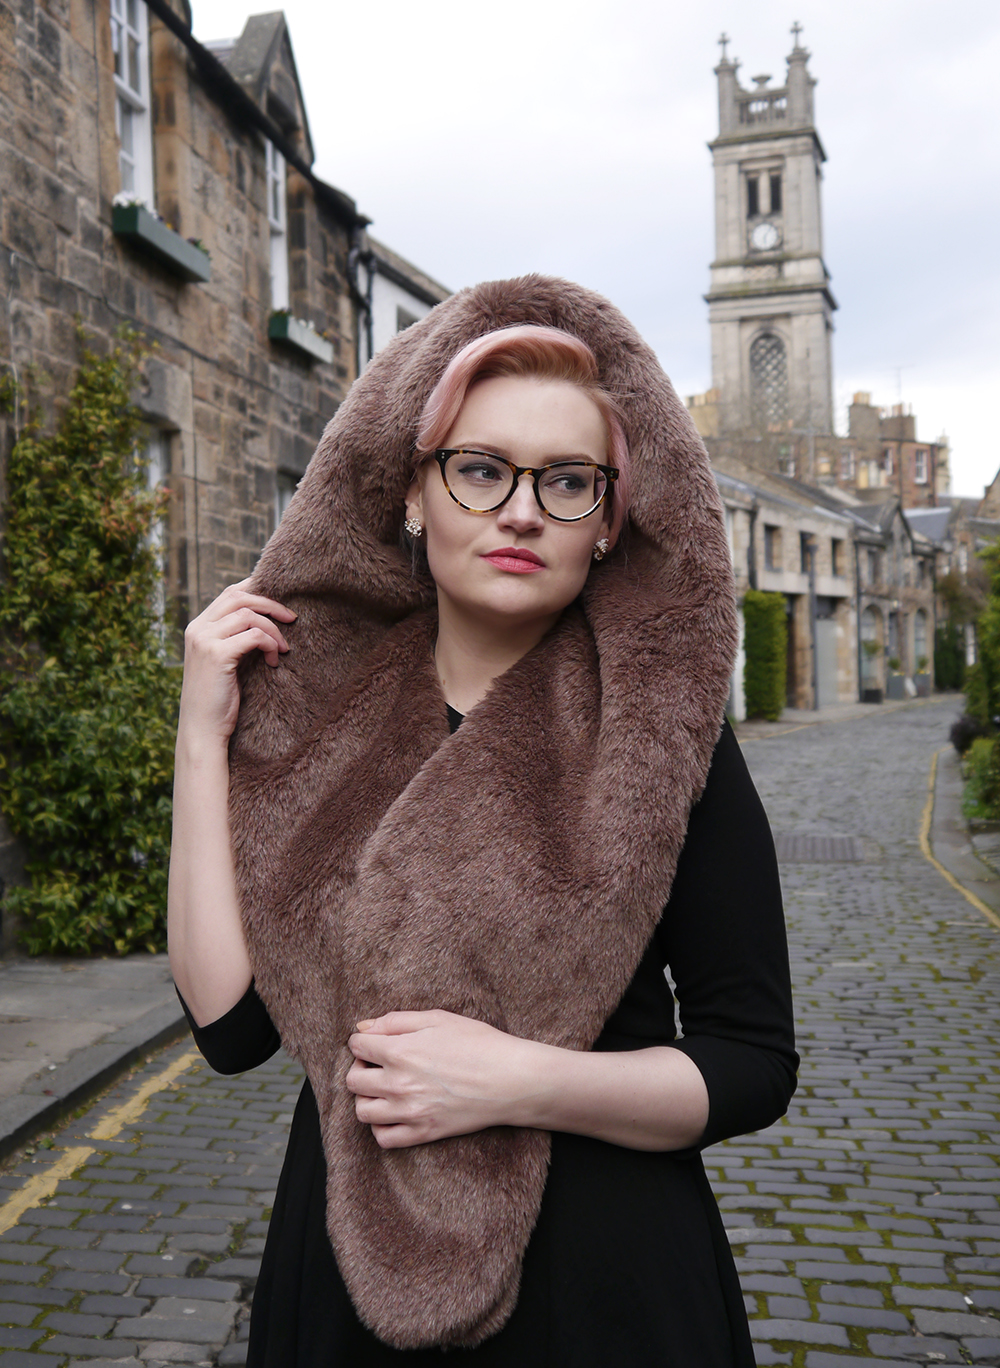 limited edition Chouchou Hollywood hood, #HOODSTYLIN, #HOODGIRLS, Dione Bowlt ceramic earrings, Stockbridge best streets, Edinburgh street style, faux fur scarf hood, natural light blog photography, candyfloss hair DIY,